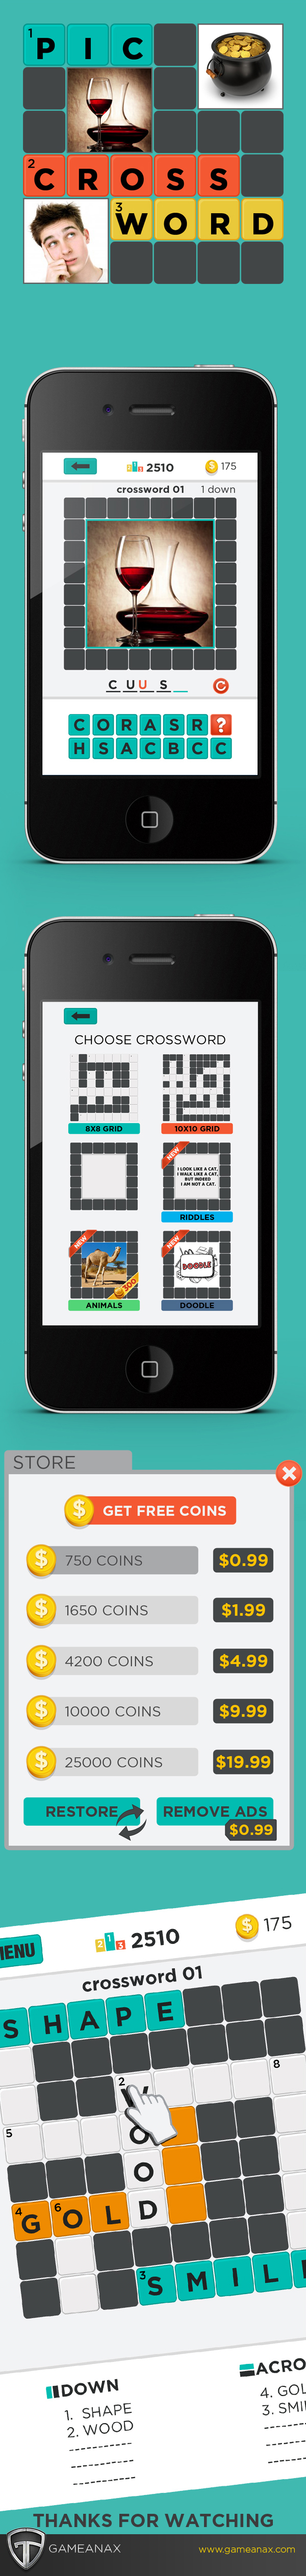 mobile gaming Gaming Games UI ux iPad iphone puzzle word puzzle